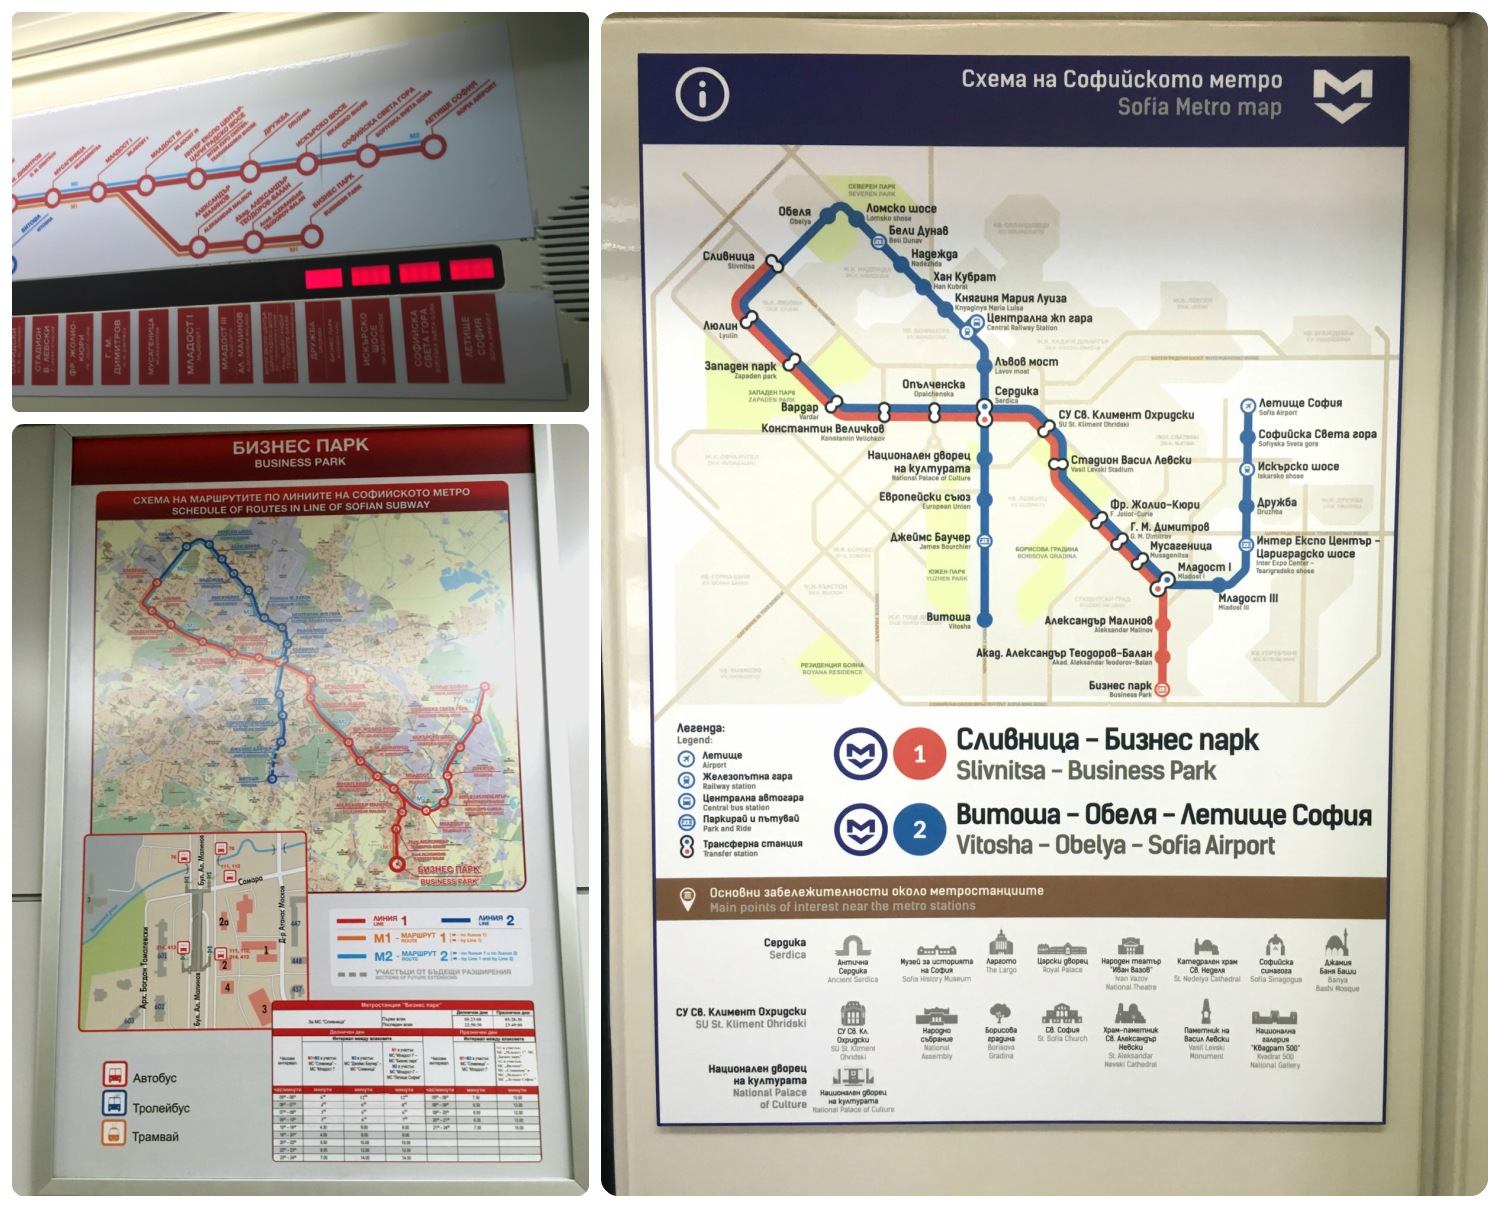 There are several different types of posted Sofia Metro maps to help you find your way. When using the map above the doors (top left), be sure to look closely to see the light red and blue lines that differentiate Sofia Metro line 1 (red) and Sofia Metro line 2 (blue).